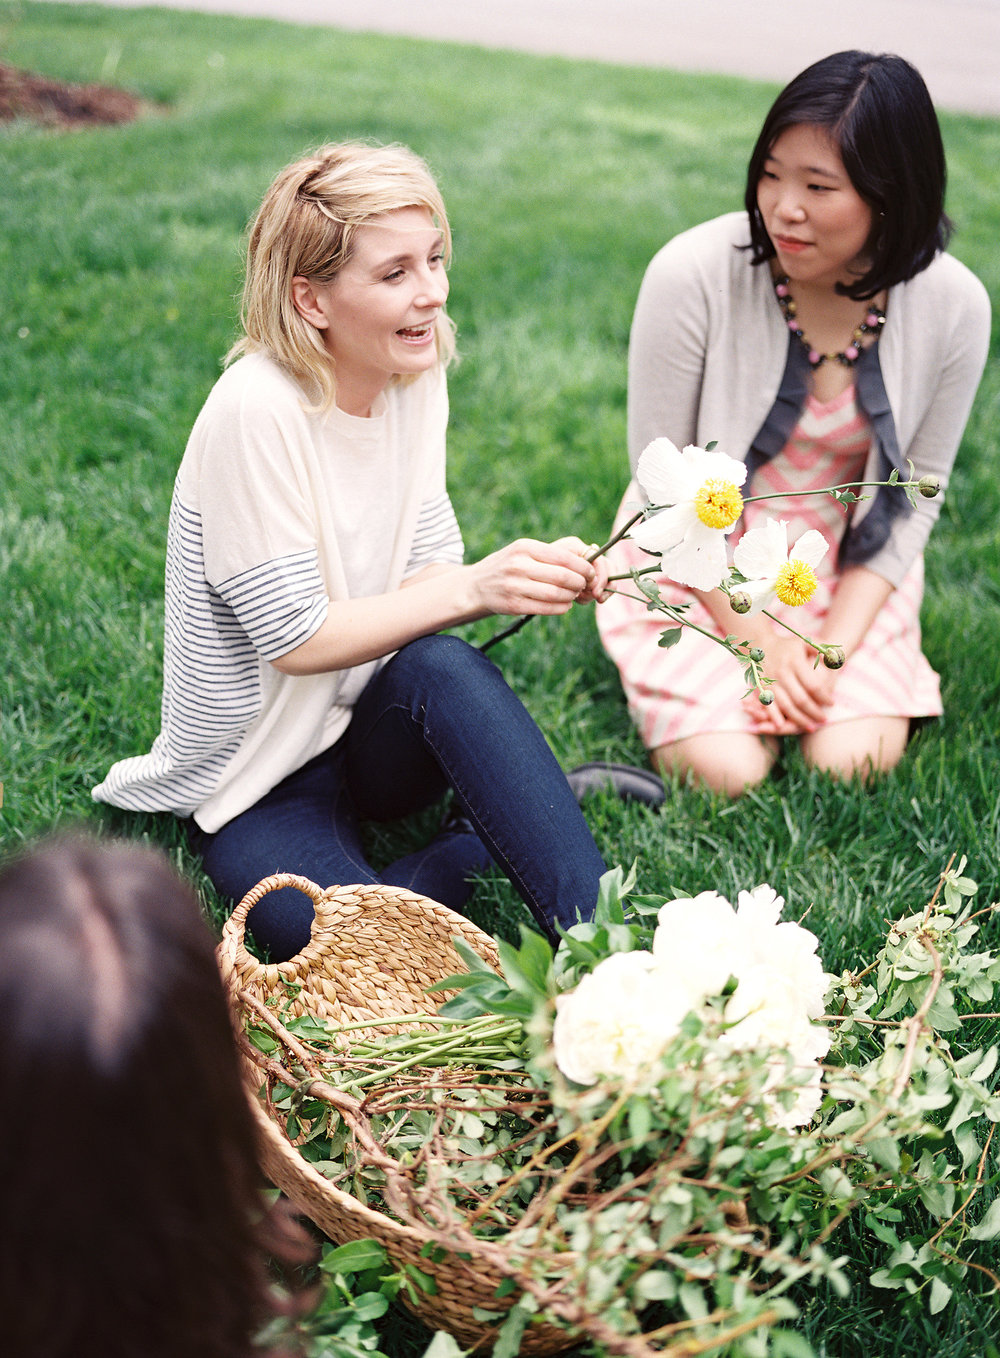 We explored the arboretum space and enjoyed meeting new faces in the courtyard with our baskets of white blooms and greenery.  | Photo:  Heather Payne